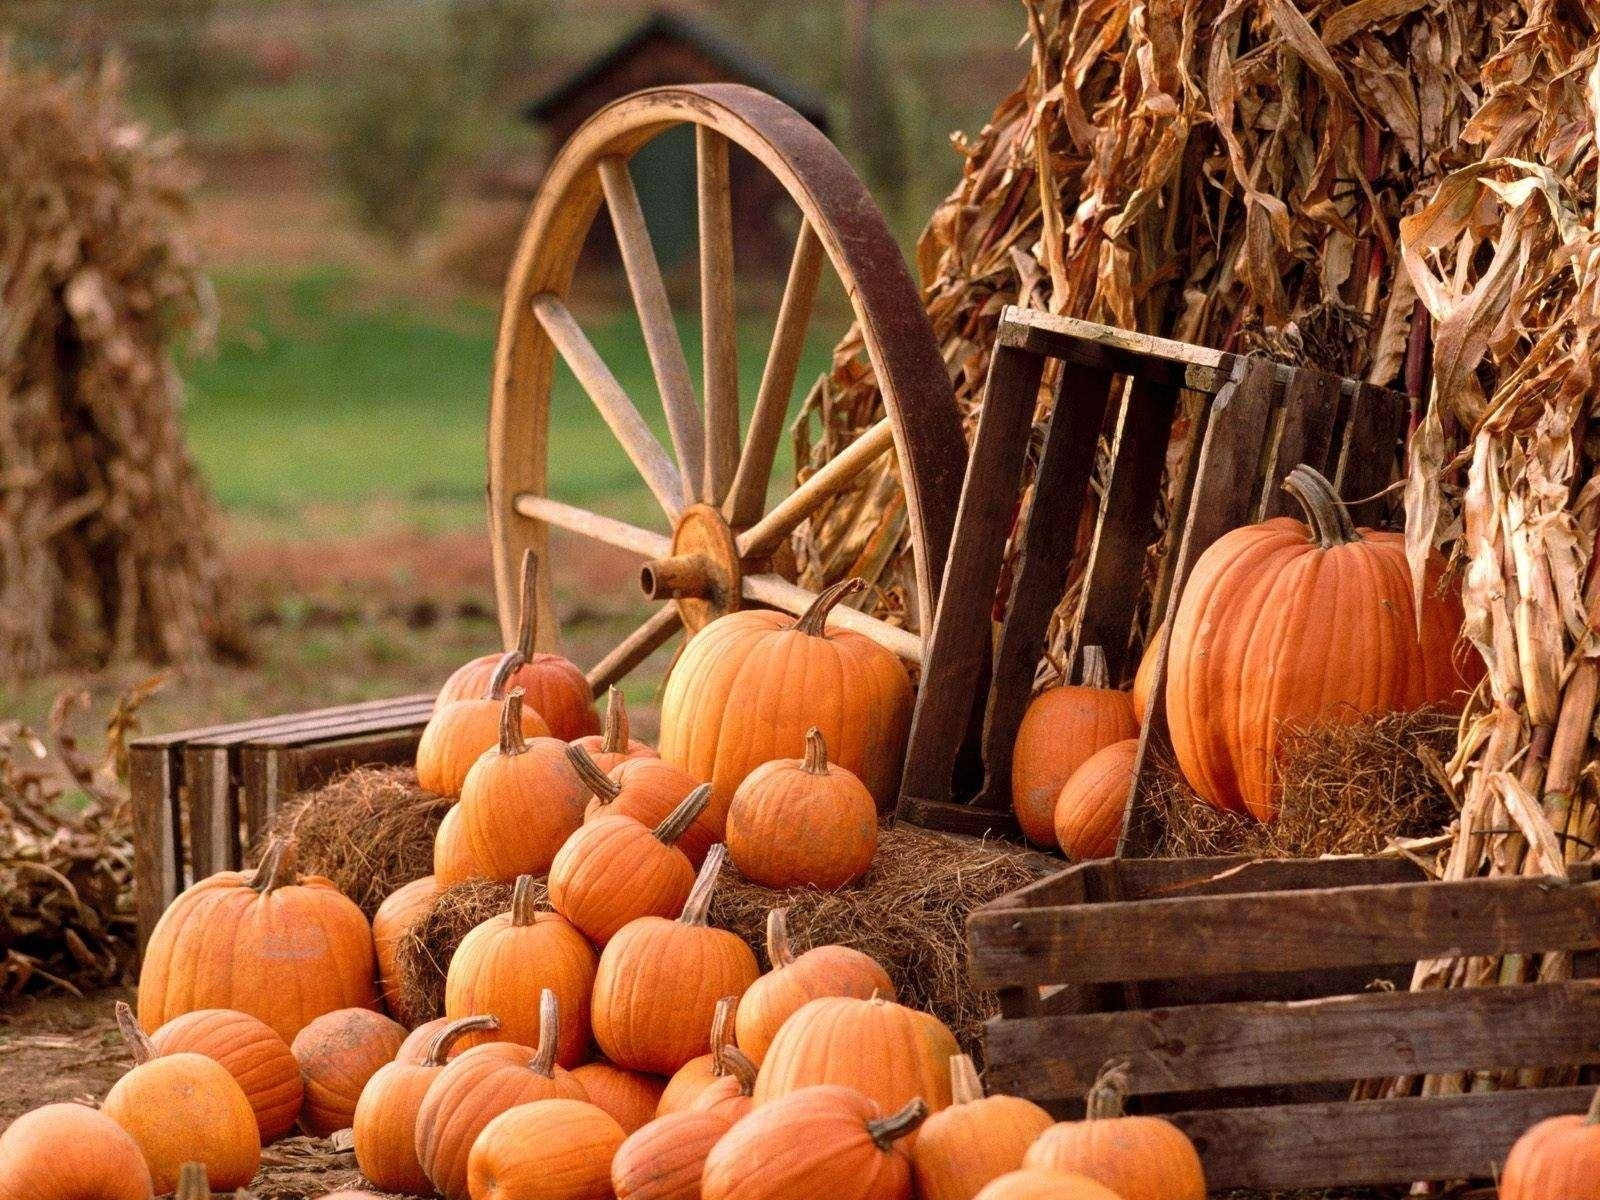 10 Latest Fall Wallpaper With Pumpkins FULL HD 1920×1080 For PC Background